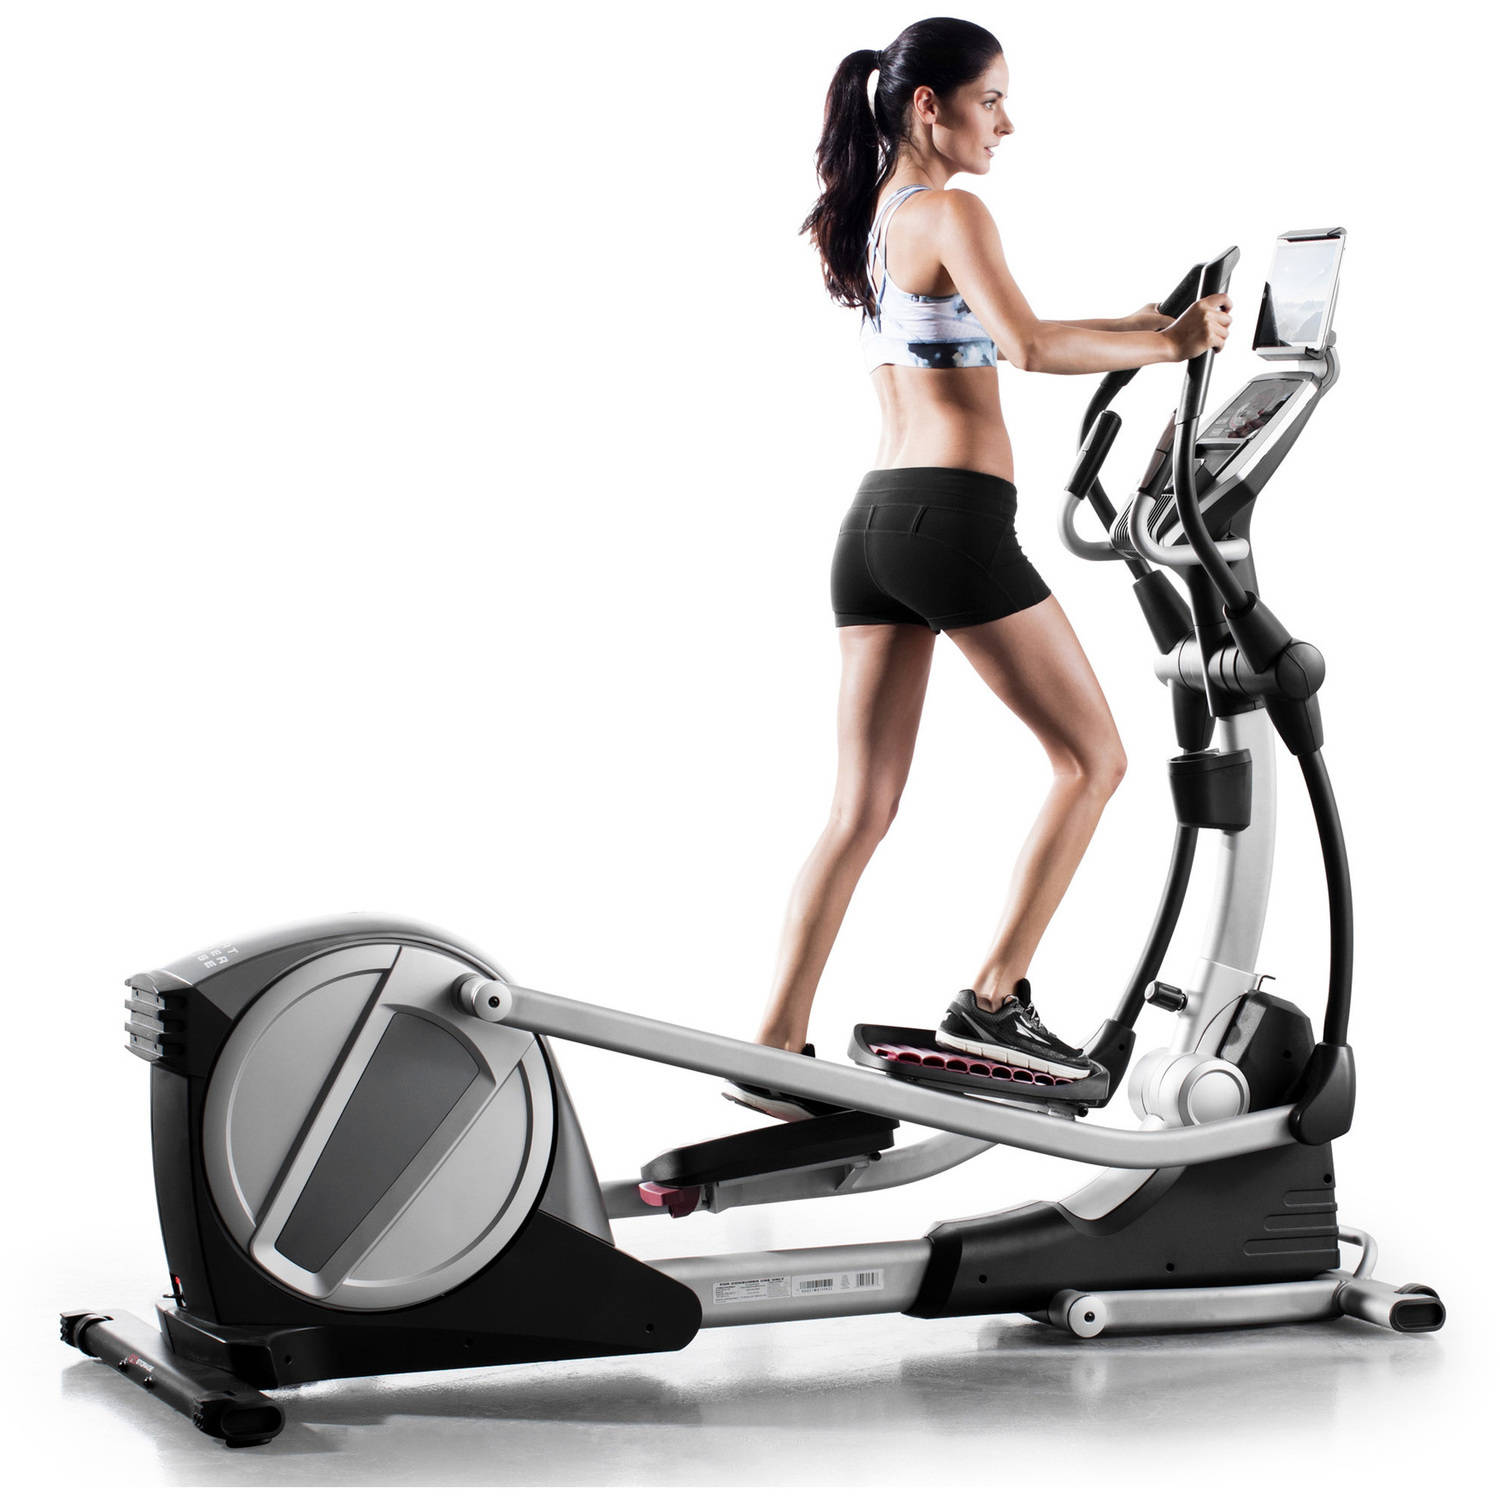 ProForm Smart Strider 695 CSE Elliptical